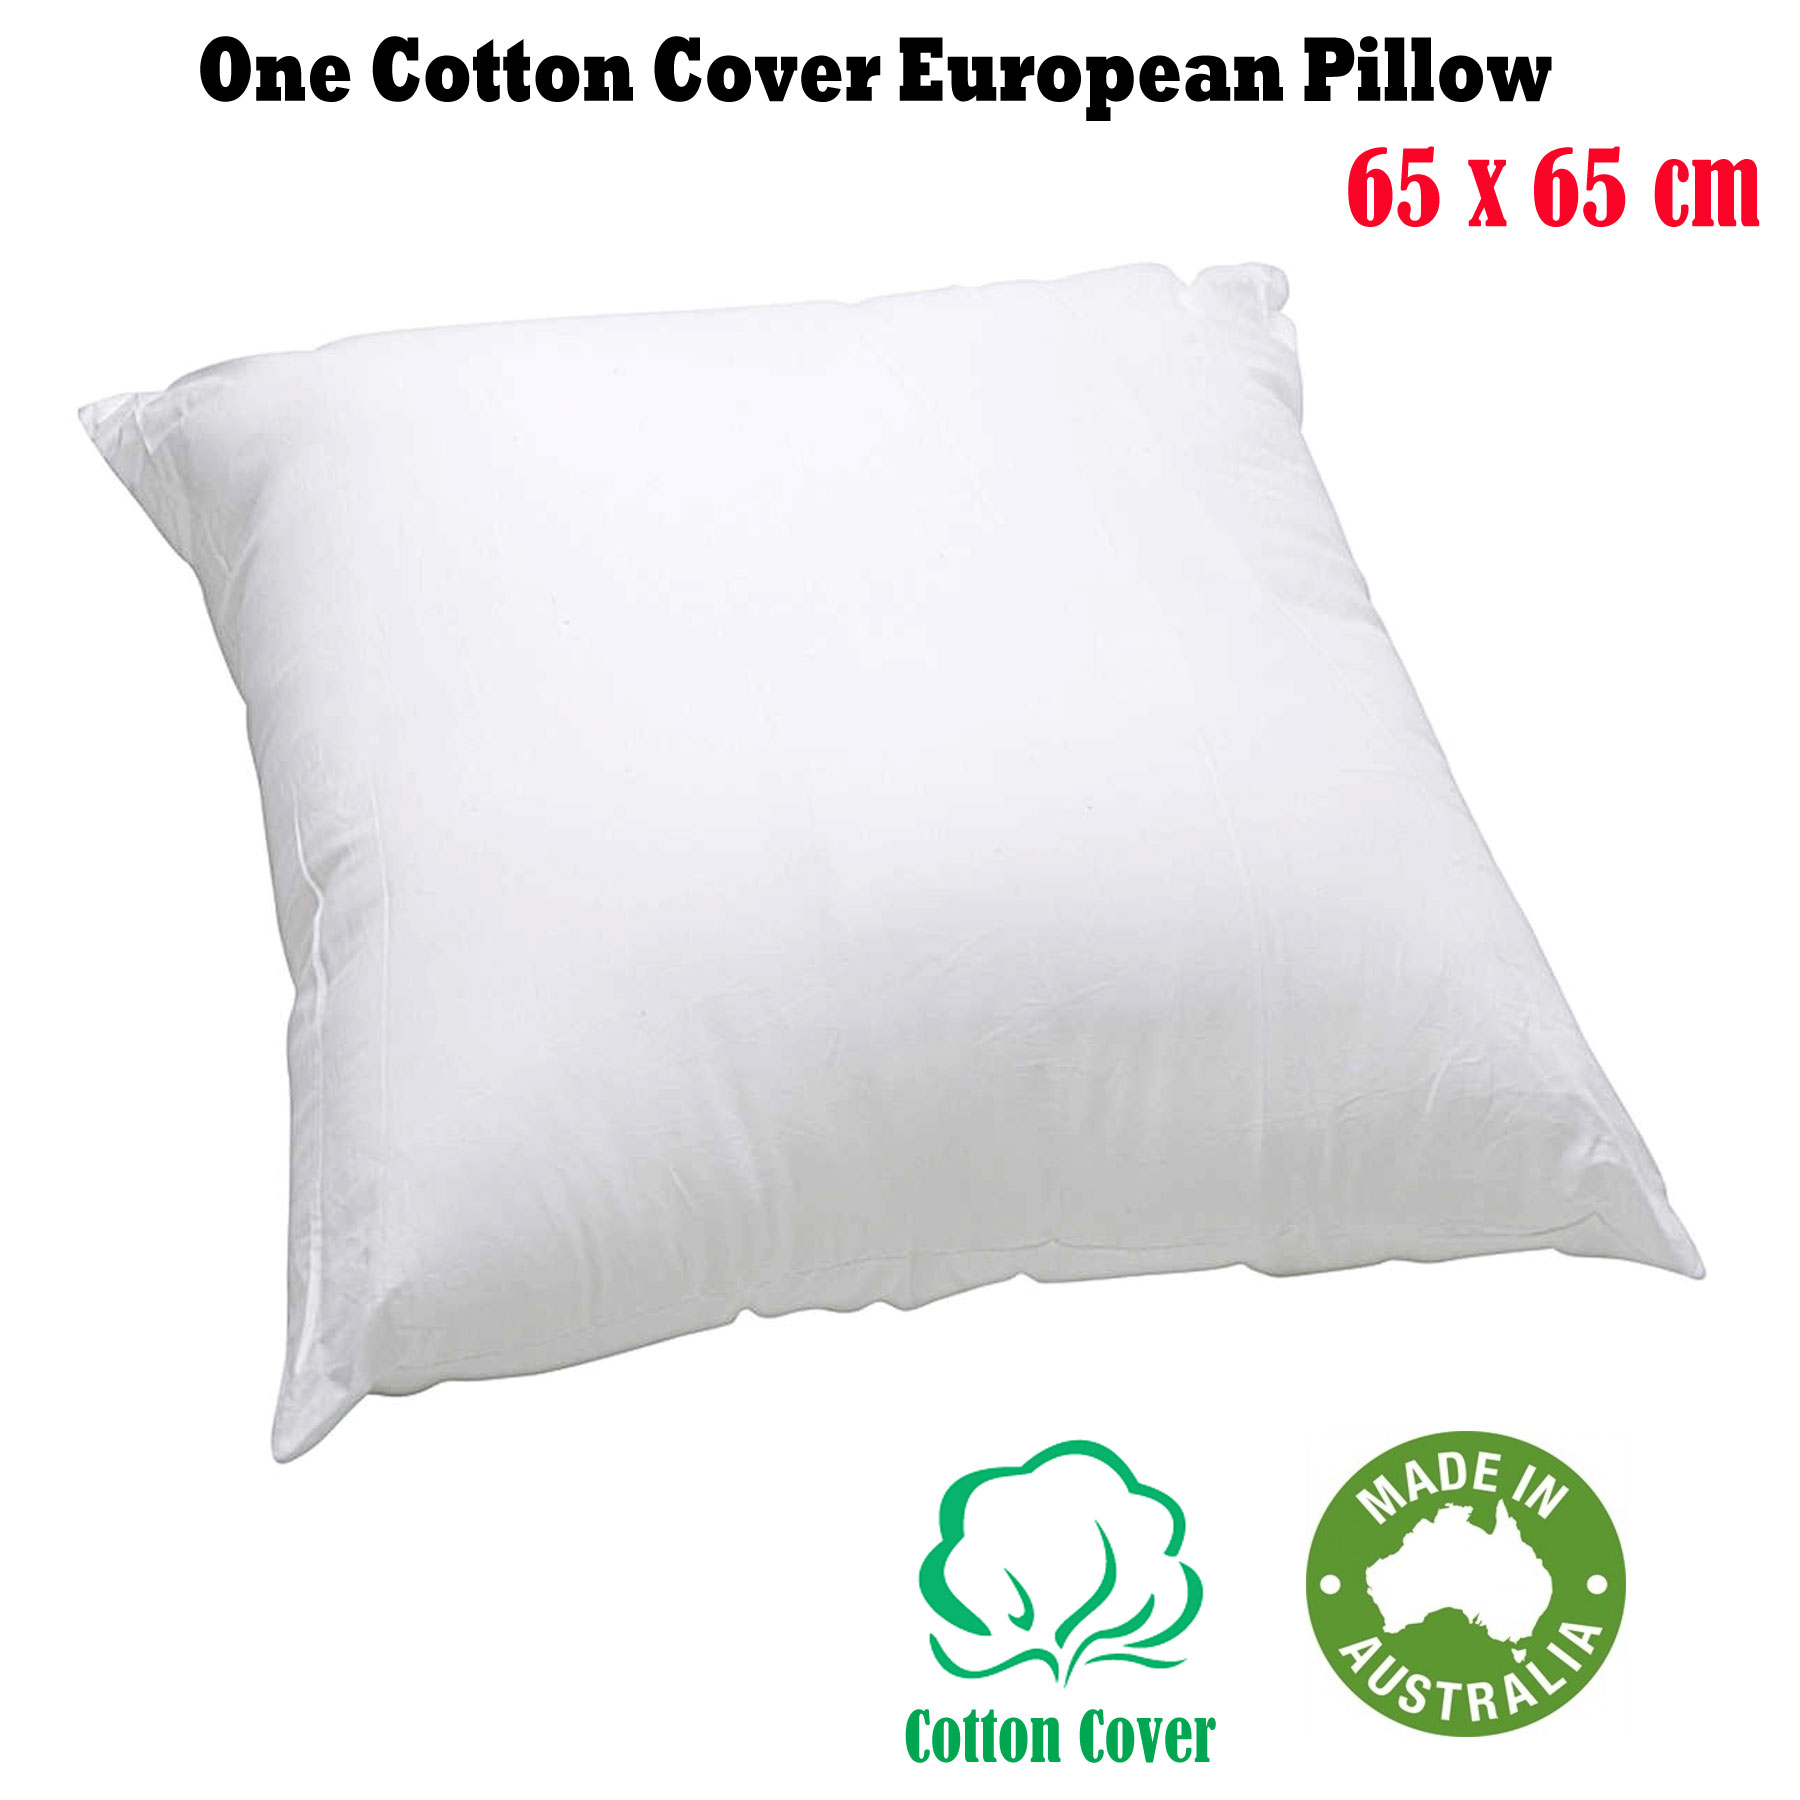 Cotton Throw Pillow Inserts : Made In Australia - EUROPEAN PILLOW INSERT Cotton Cover & Polyester Fill 65x65cm eBay